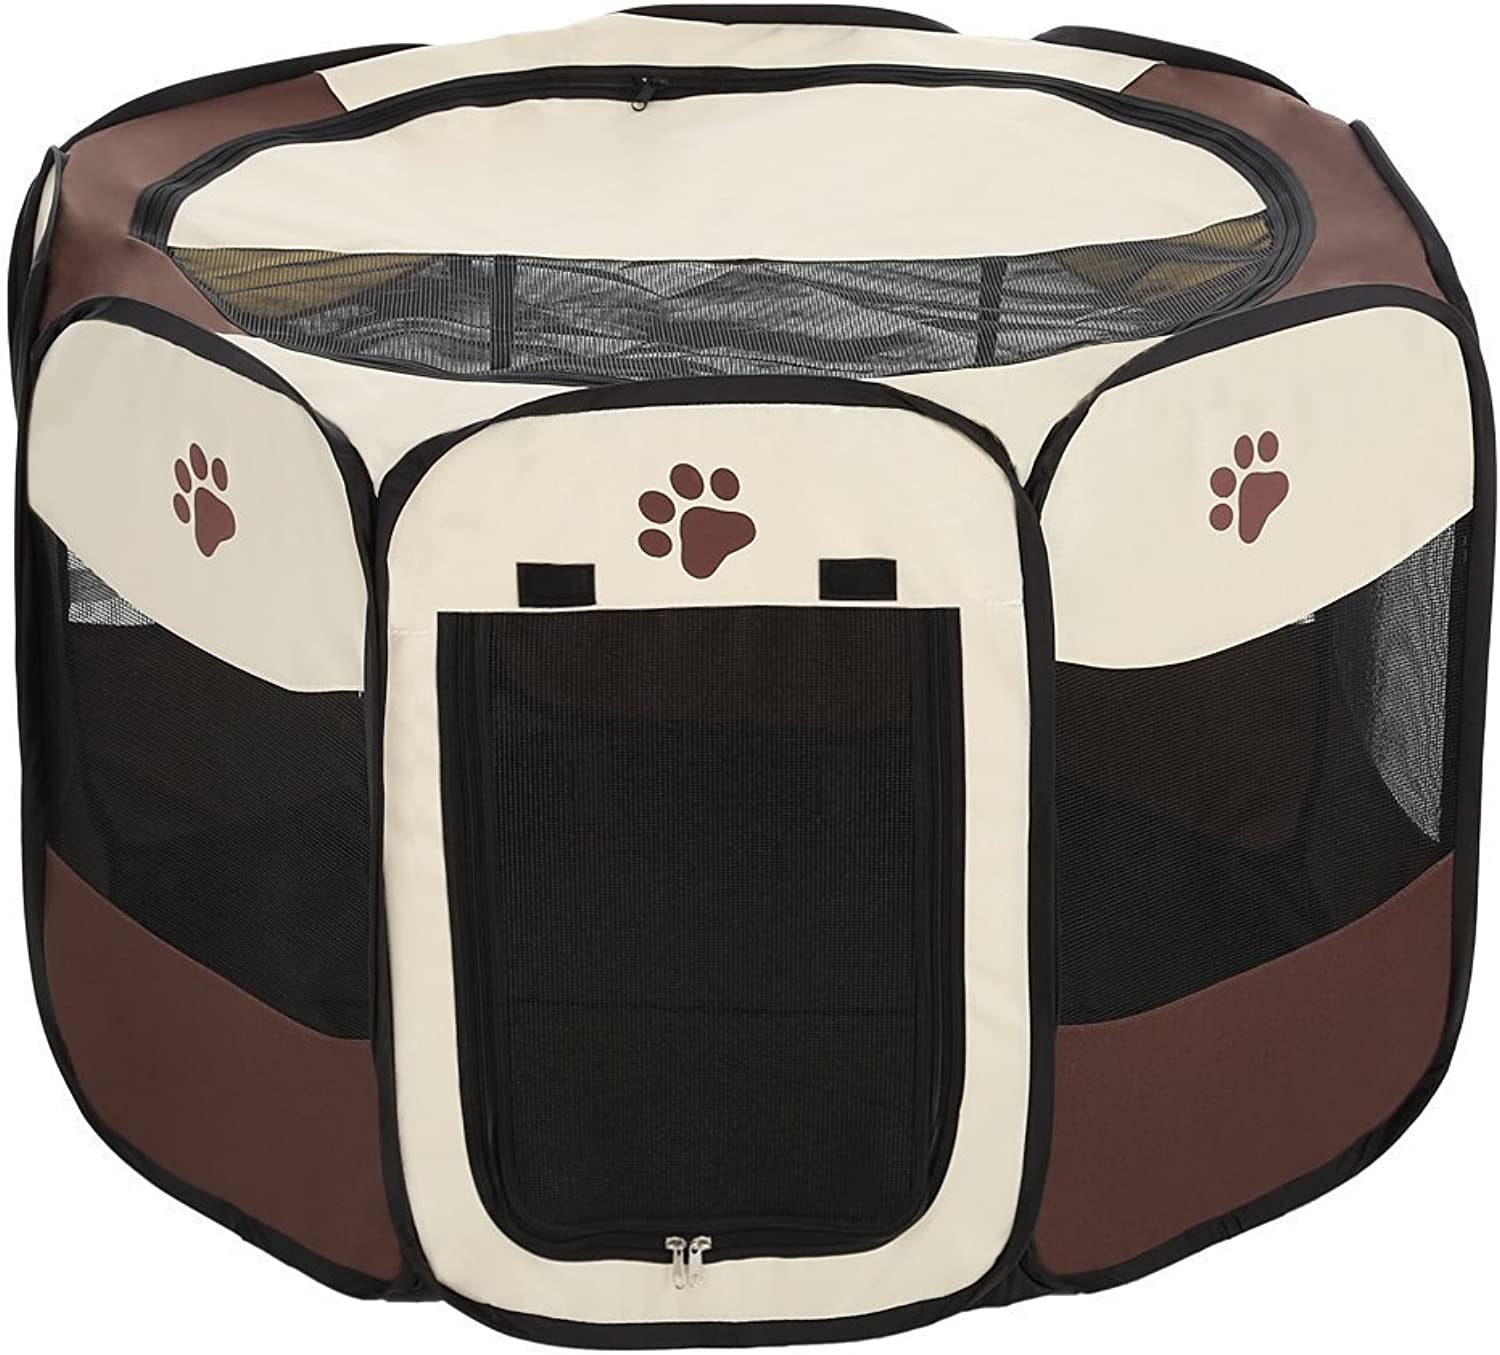 FashionMall Portable Playpen for Dogs & Cats, Foldable Exercise Crate and Kennel for Puppy Kitty and Rabbits, Outdoor pens for Travel and Household Use (S (28  Dia x 18  H), Elegant Brown)